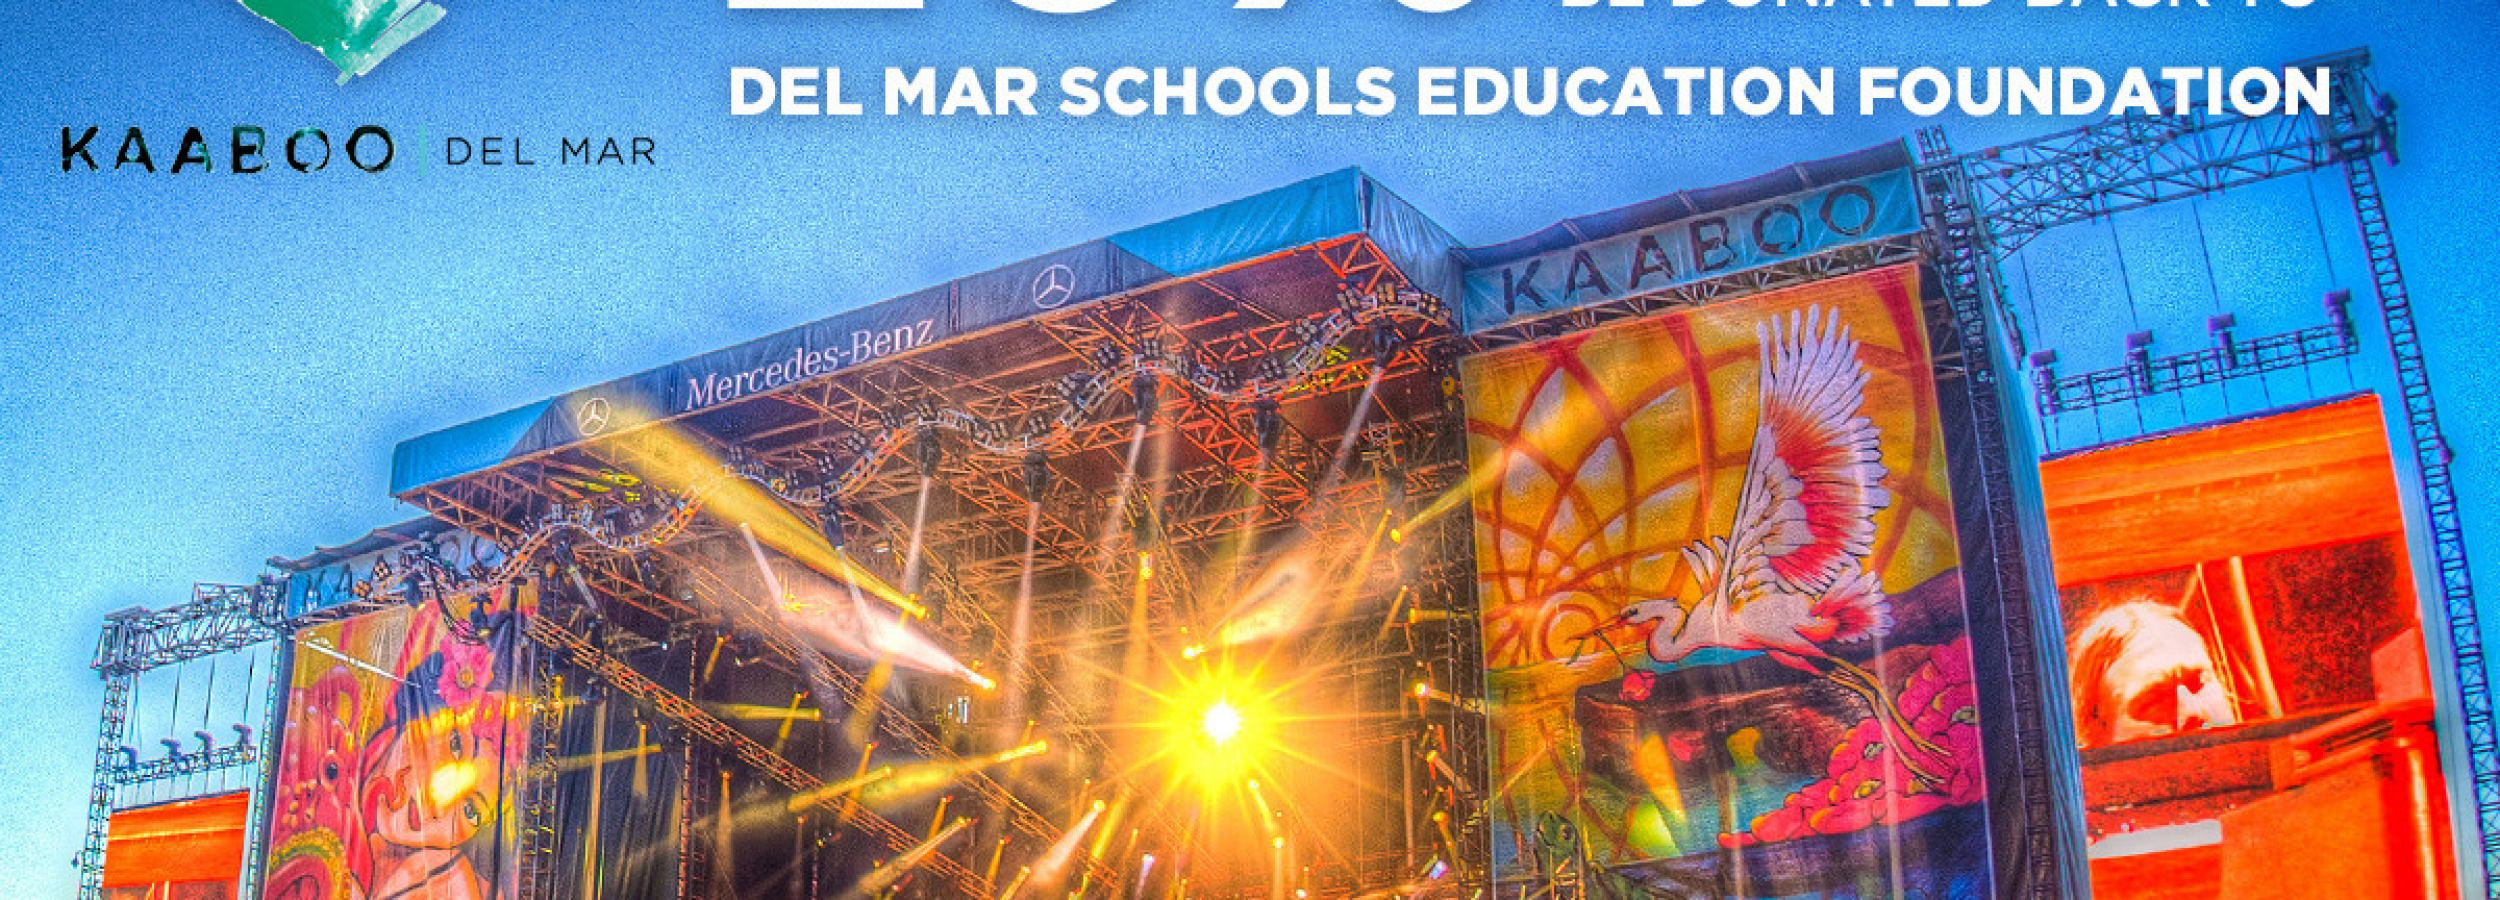 But your Kaaboo tickets with promocode DELMARSCHOOLS to benifit the DMSEF